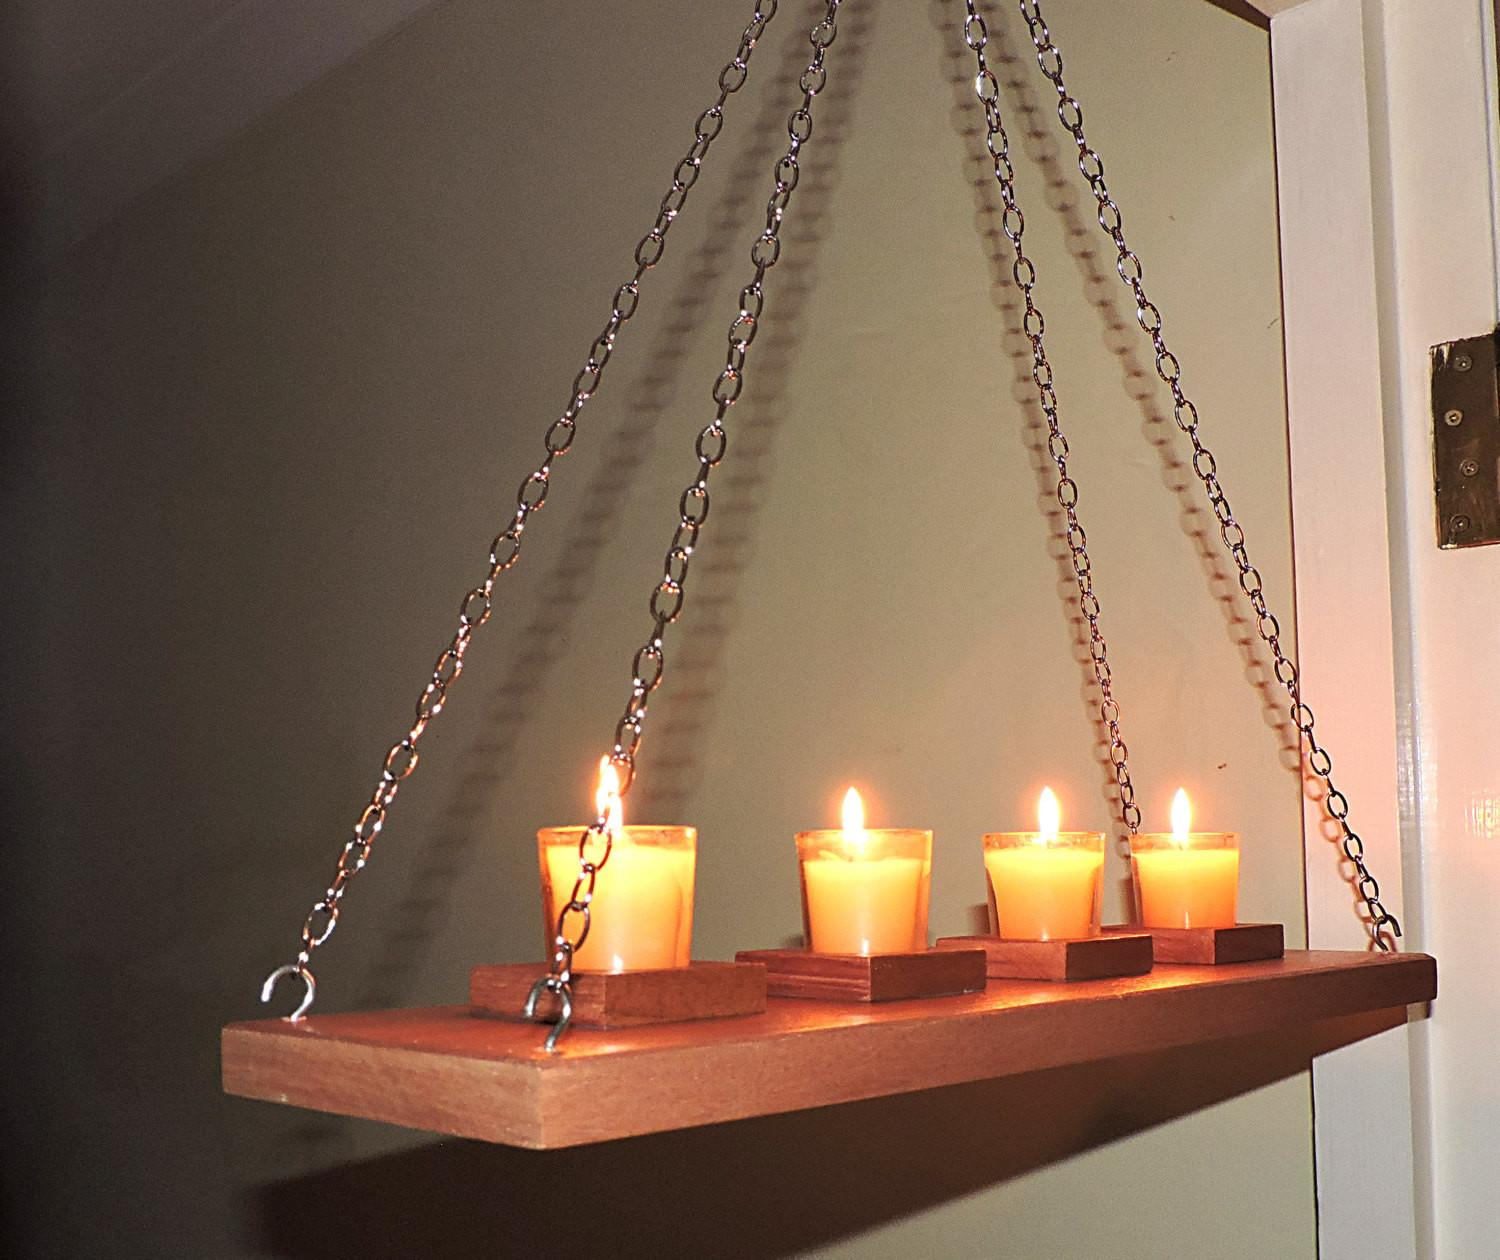 Wall Ceiling Hanging Rustic Candle Holderrustic Moder Wooden